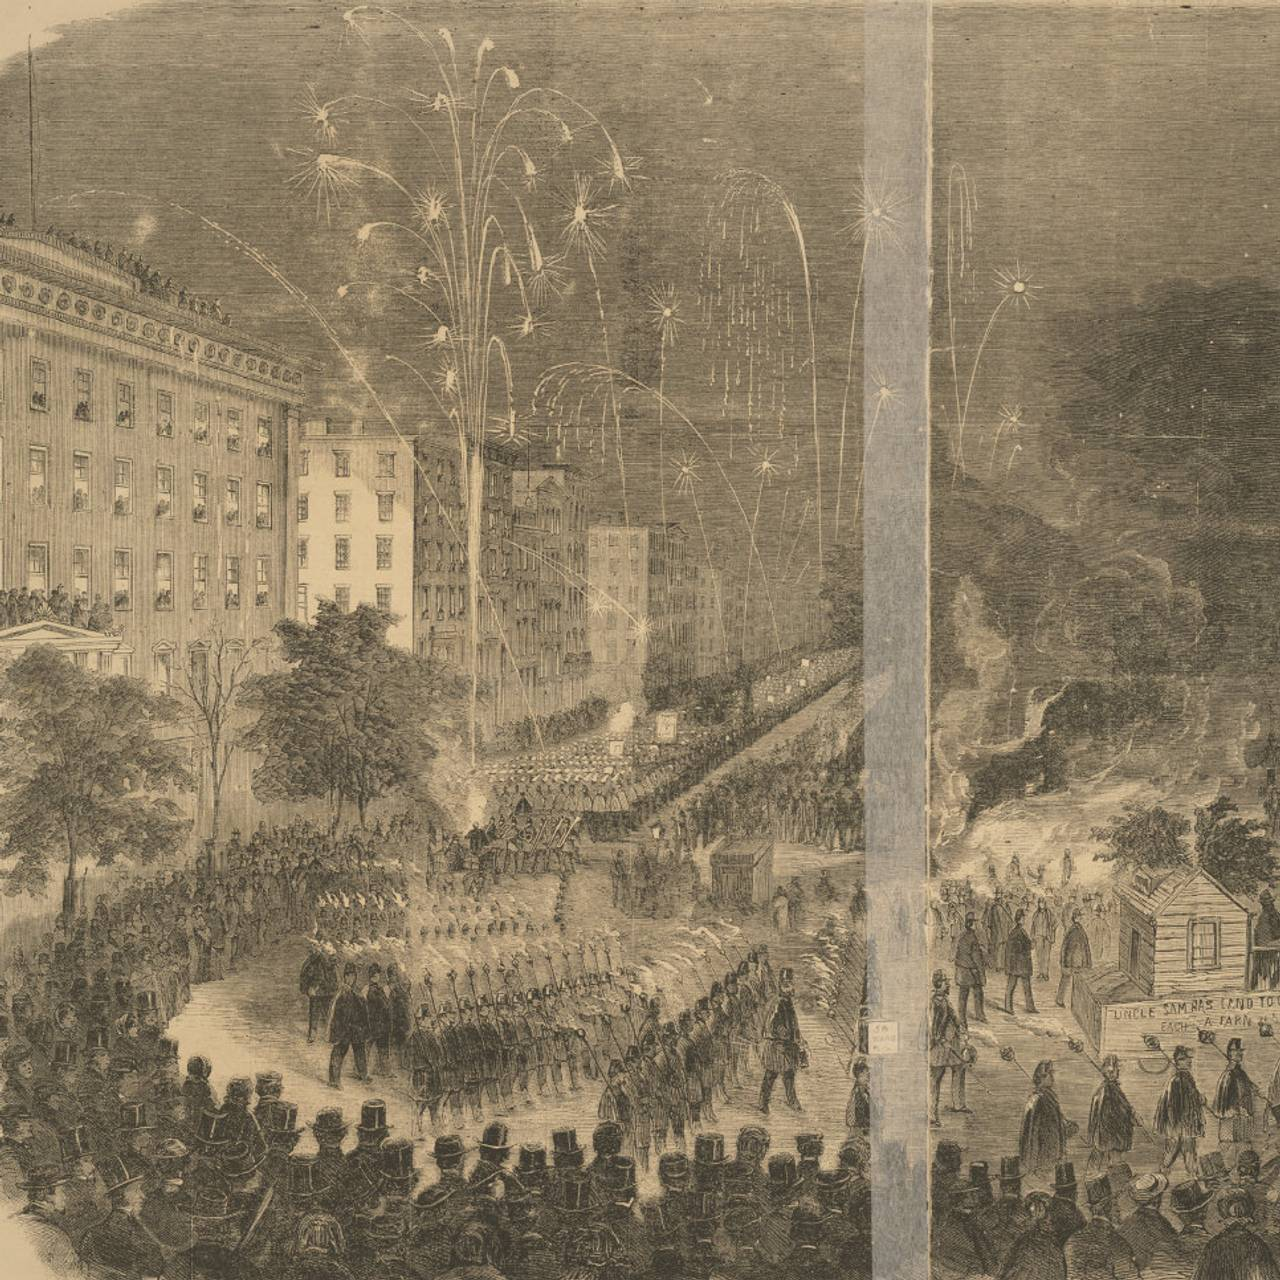 Fra rundt 1860: Grand Torchlight Procession of the Wide-Awake Clubs in the City of New York